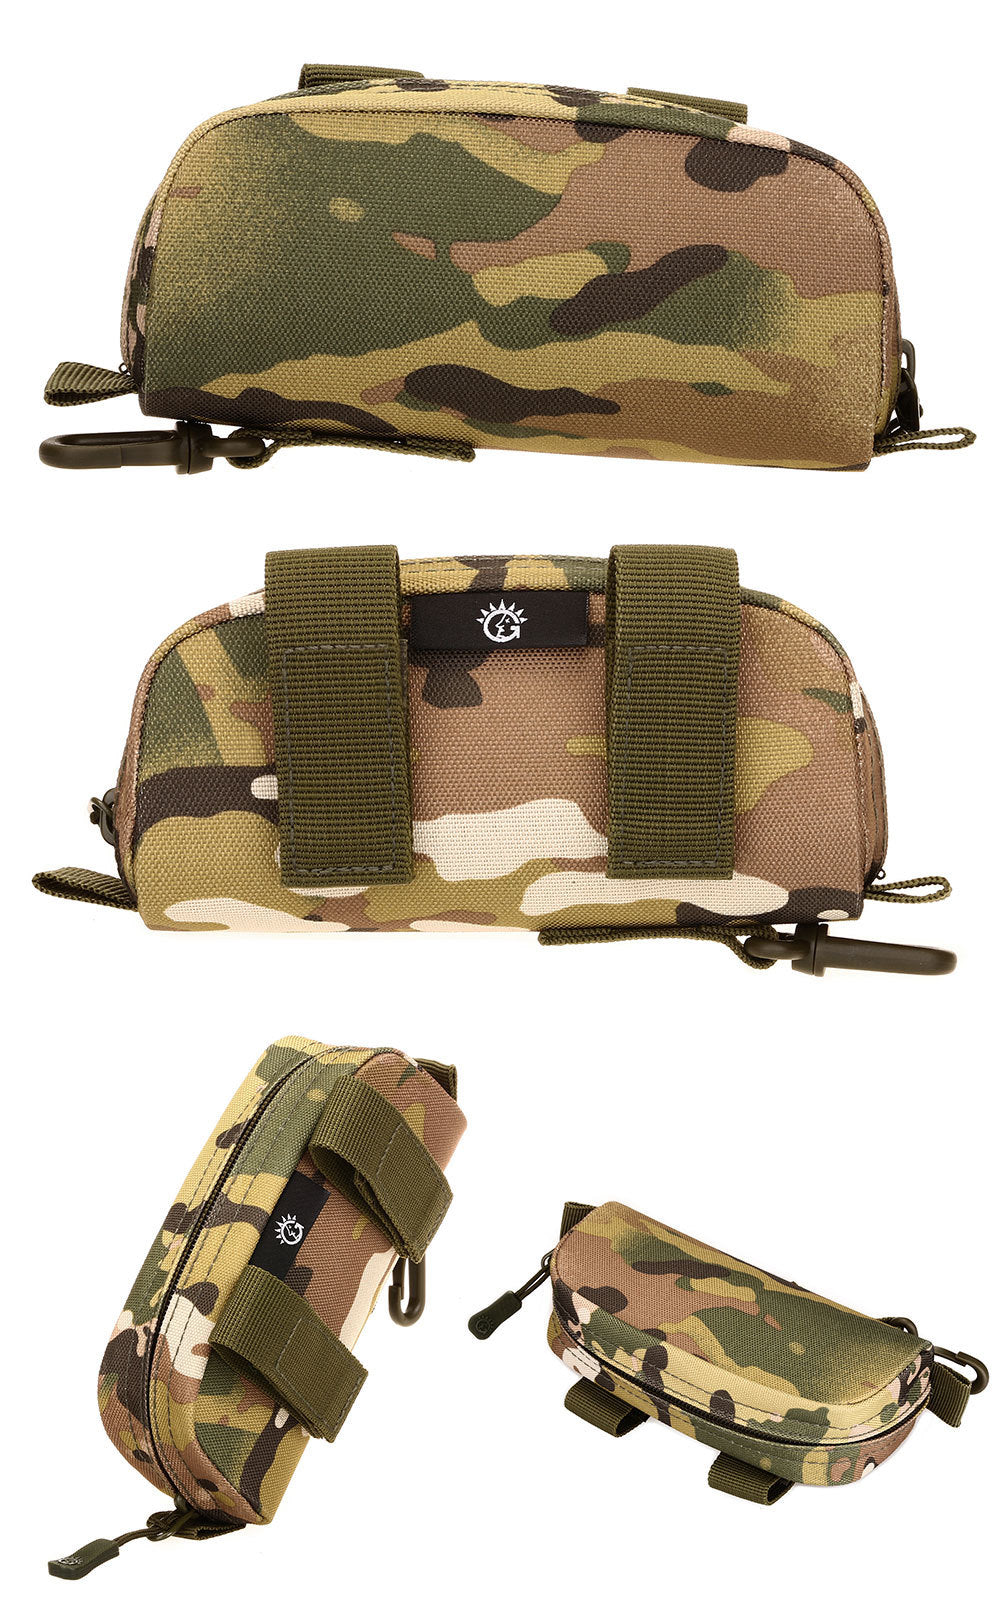 Tactical MOLLE System Pouch Belt Pack Sunglasses Case Waterproof Camouflage Waist Bag Belt Pack EDC Pouch For Hiking Sports MTB Travel Hunting - 4 Colors